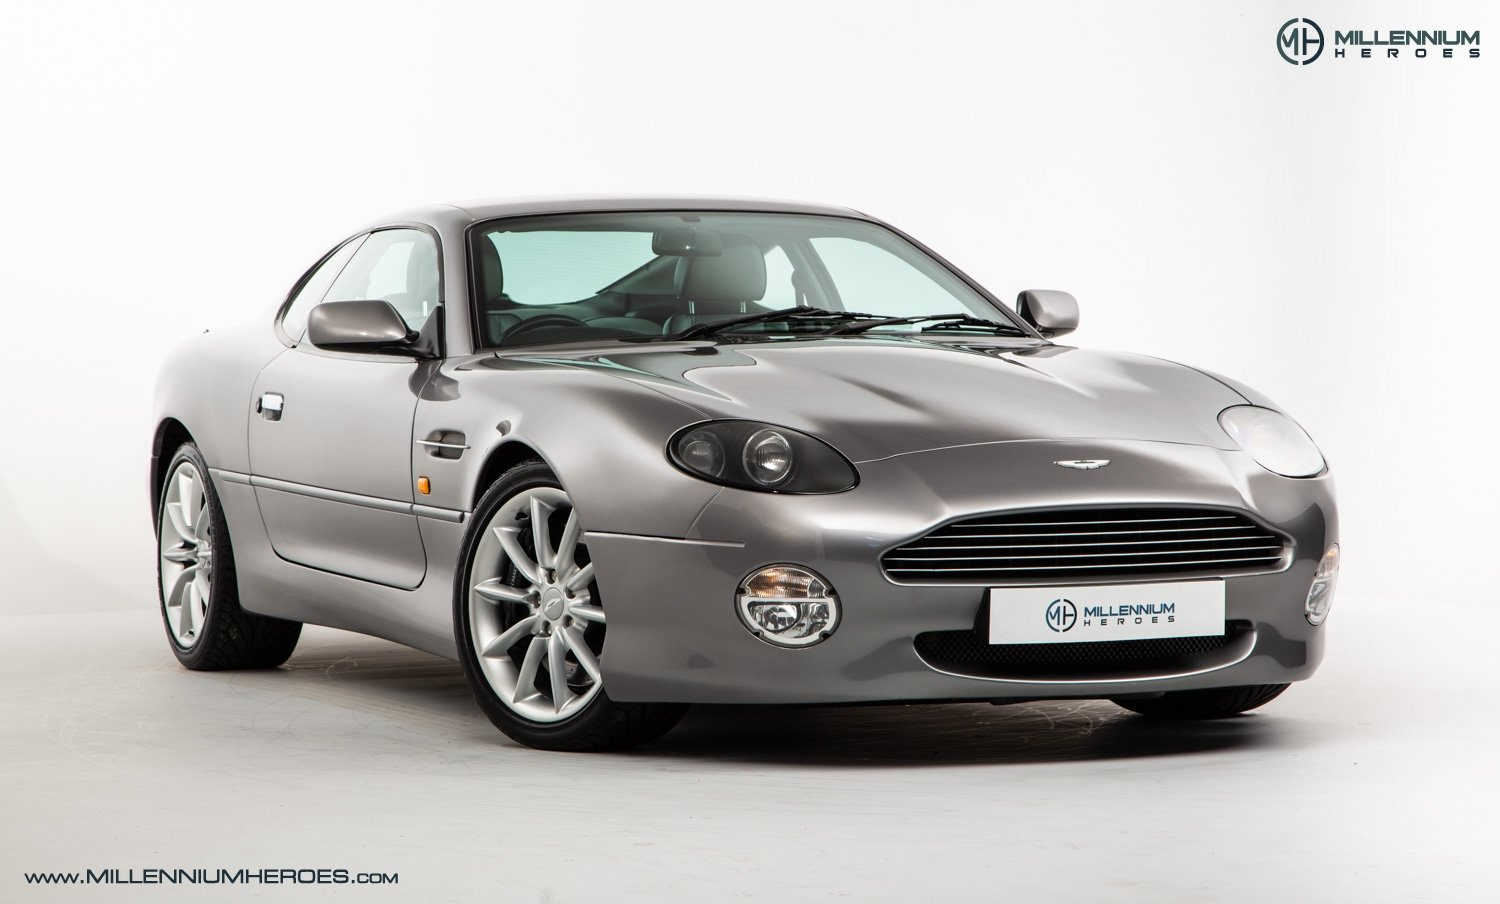 2000 ASTON MARTIN DB7 5.9 VANTAGE  For Sale (picture 6 of 24)